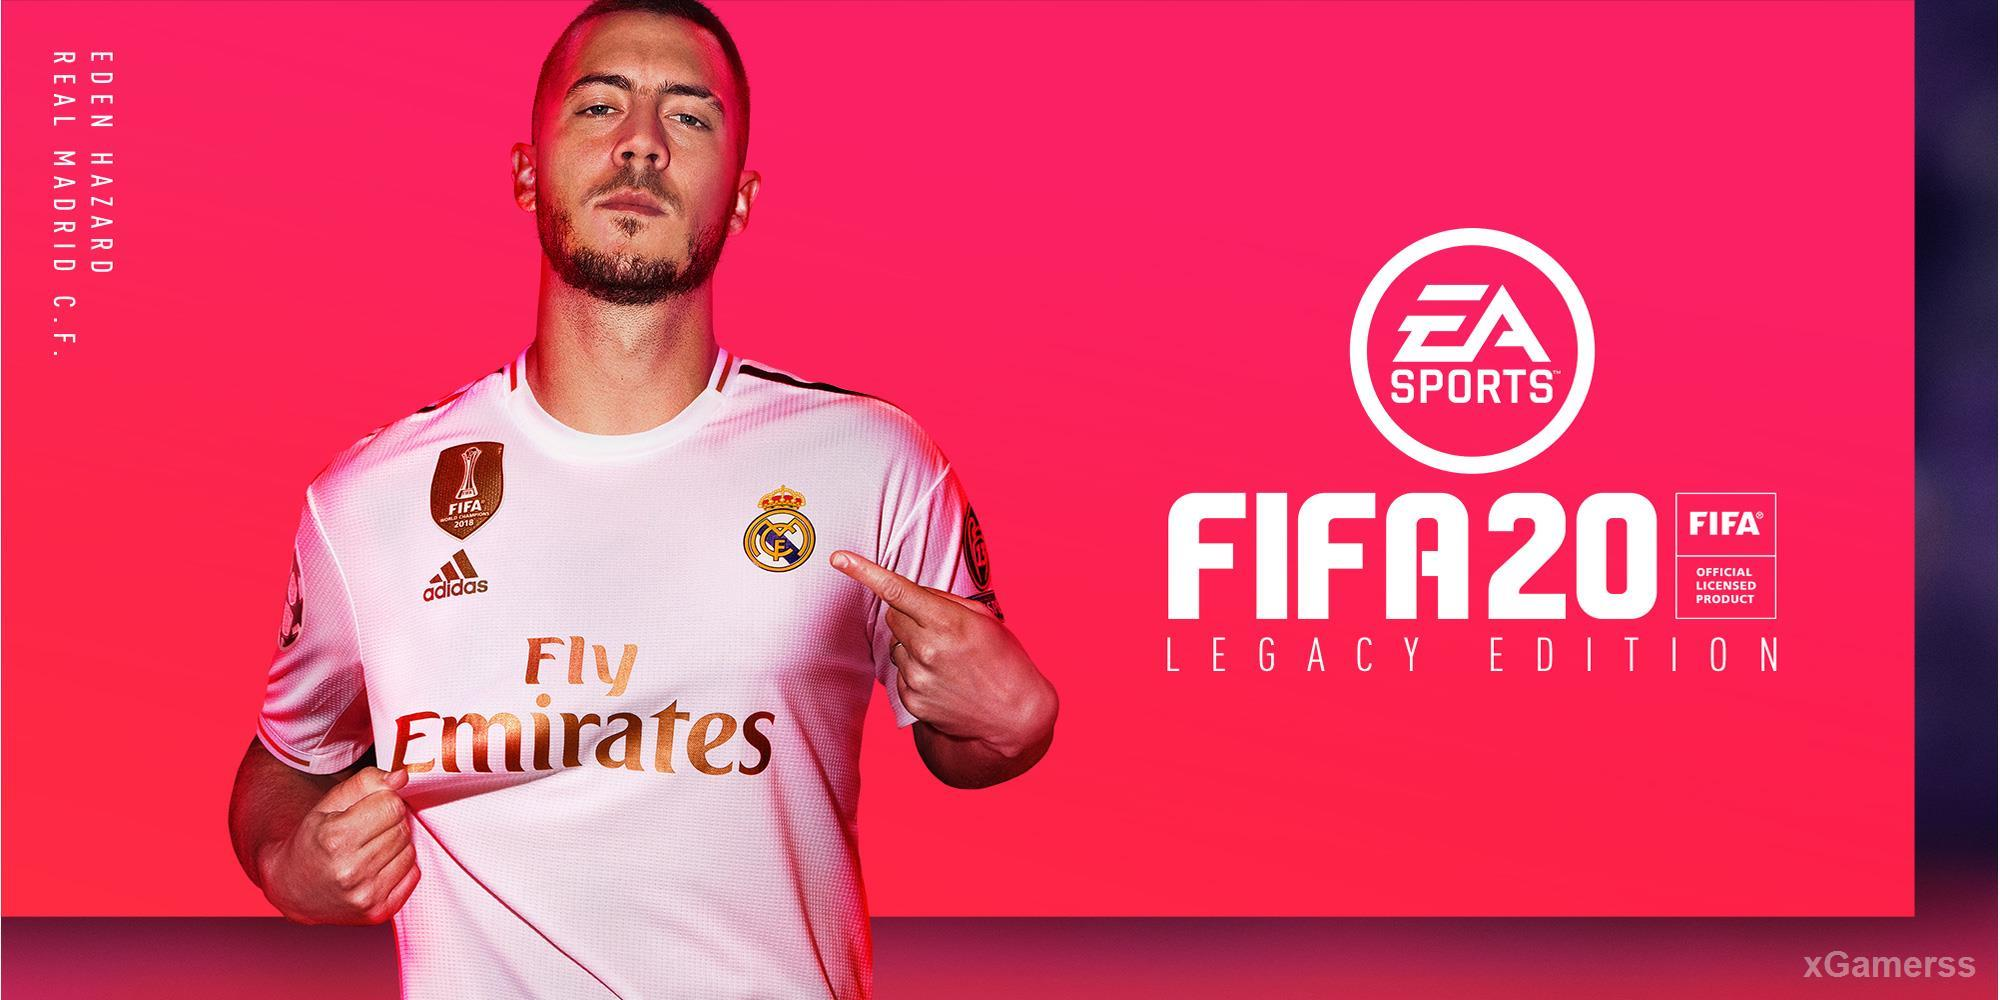 FIFA 20 - one of the best Football game for PS4